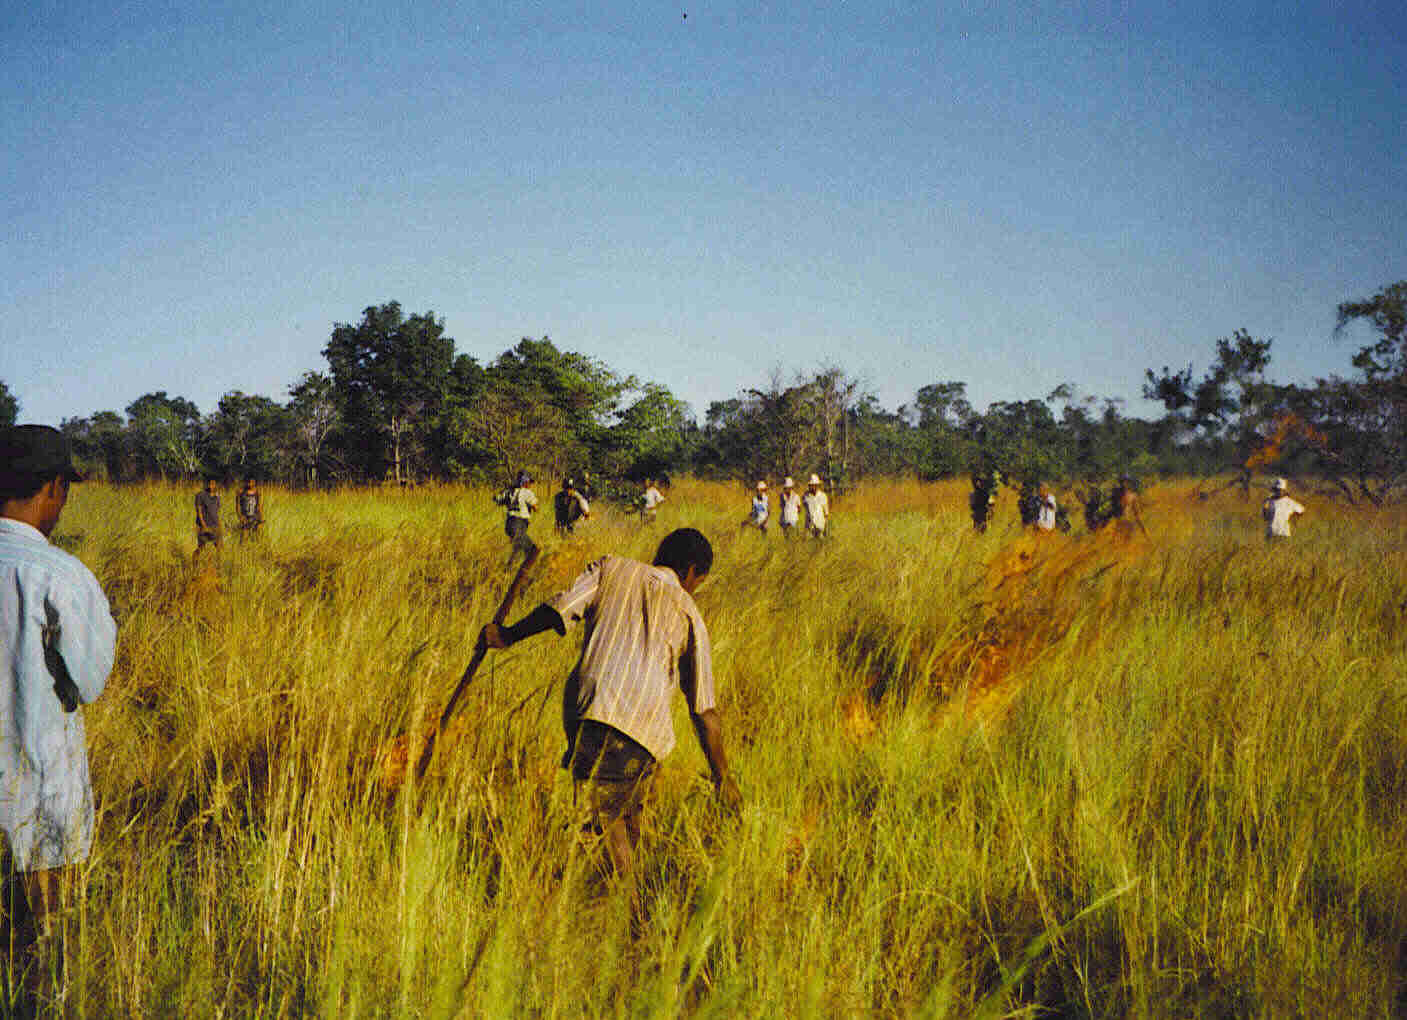 Rural Development, Livelihoods and Conservation